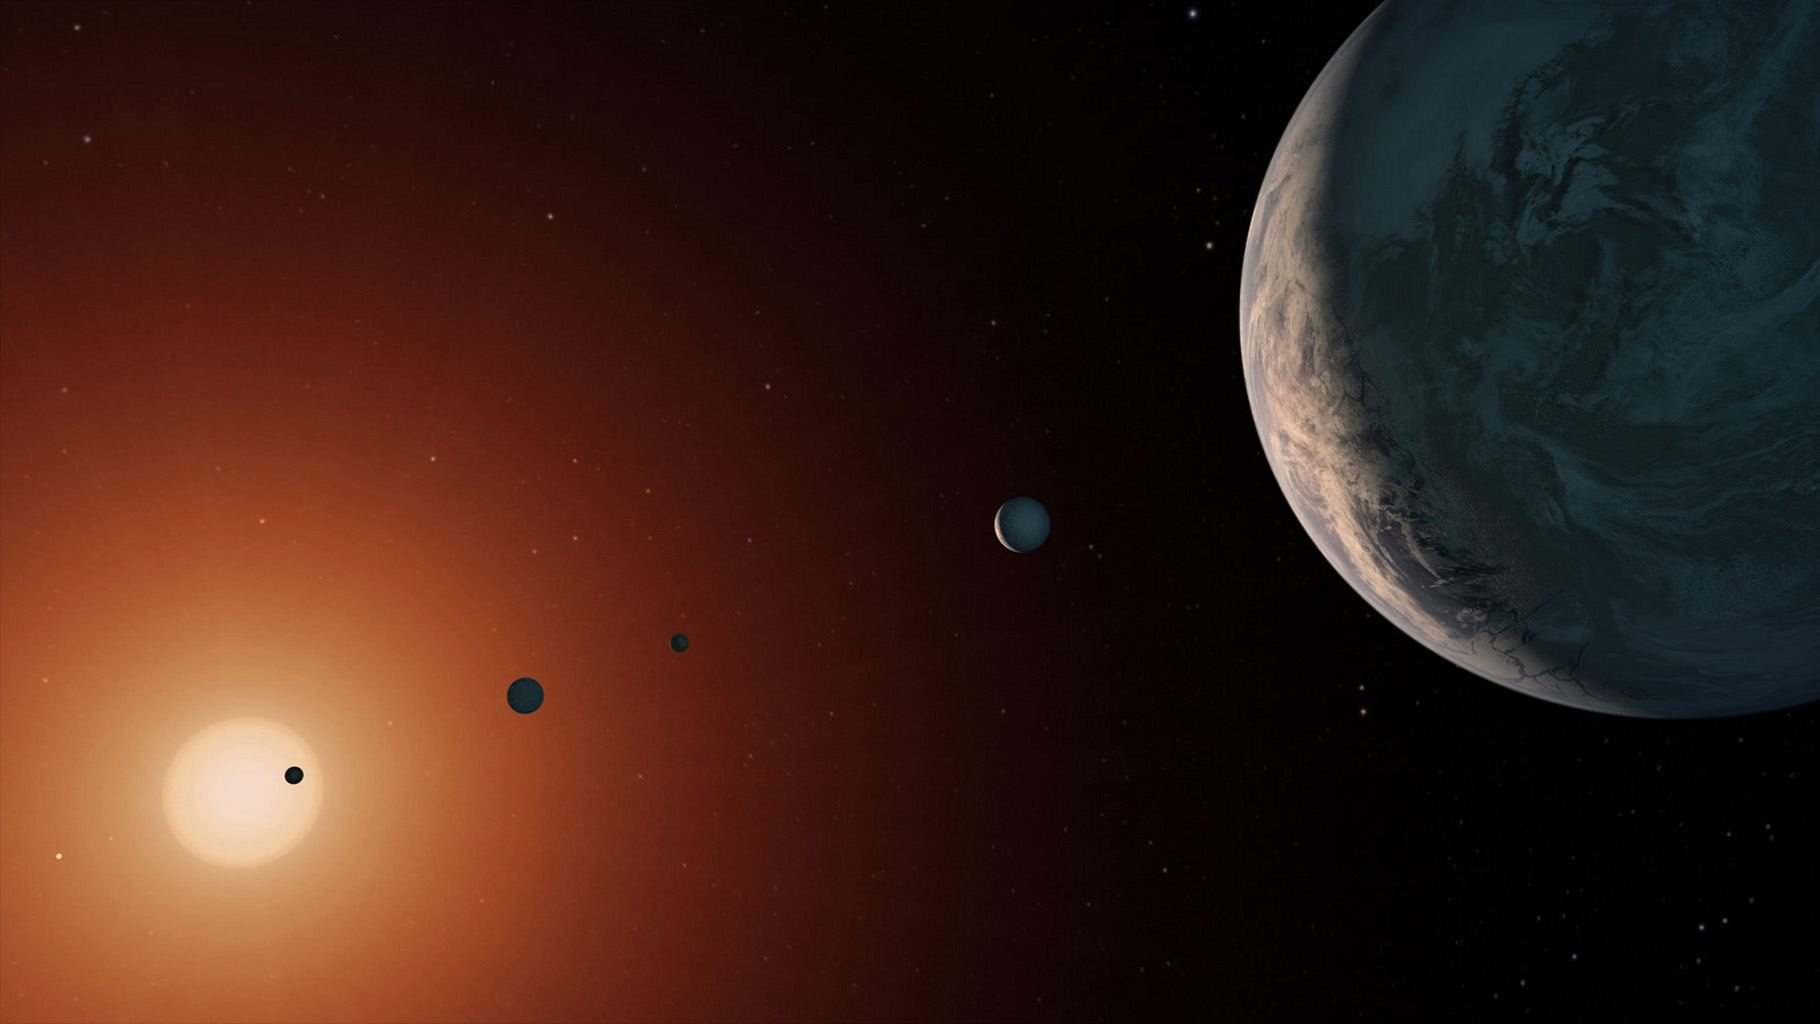 This artist's concept shows what the TRAPPIST-1 planetary system may look like from a vantage point near planet TRAPPIST-1f (at right).